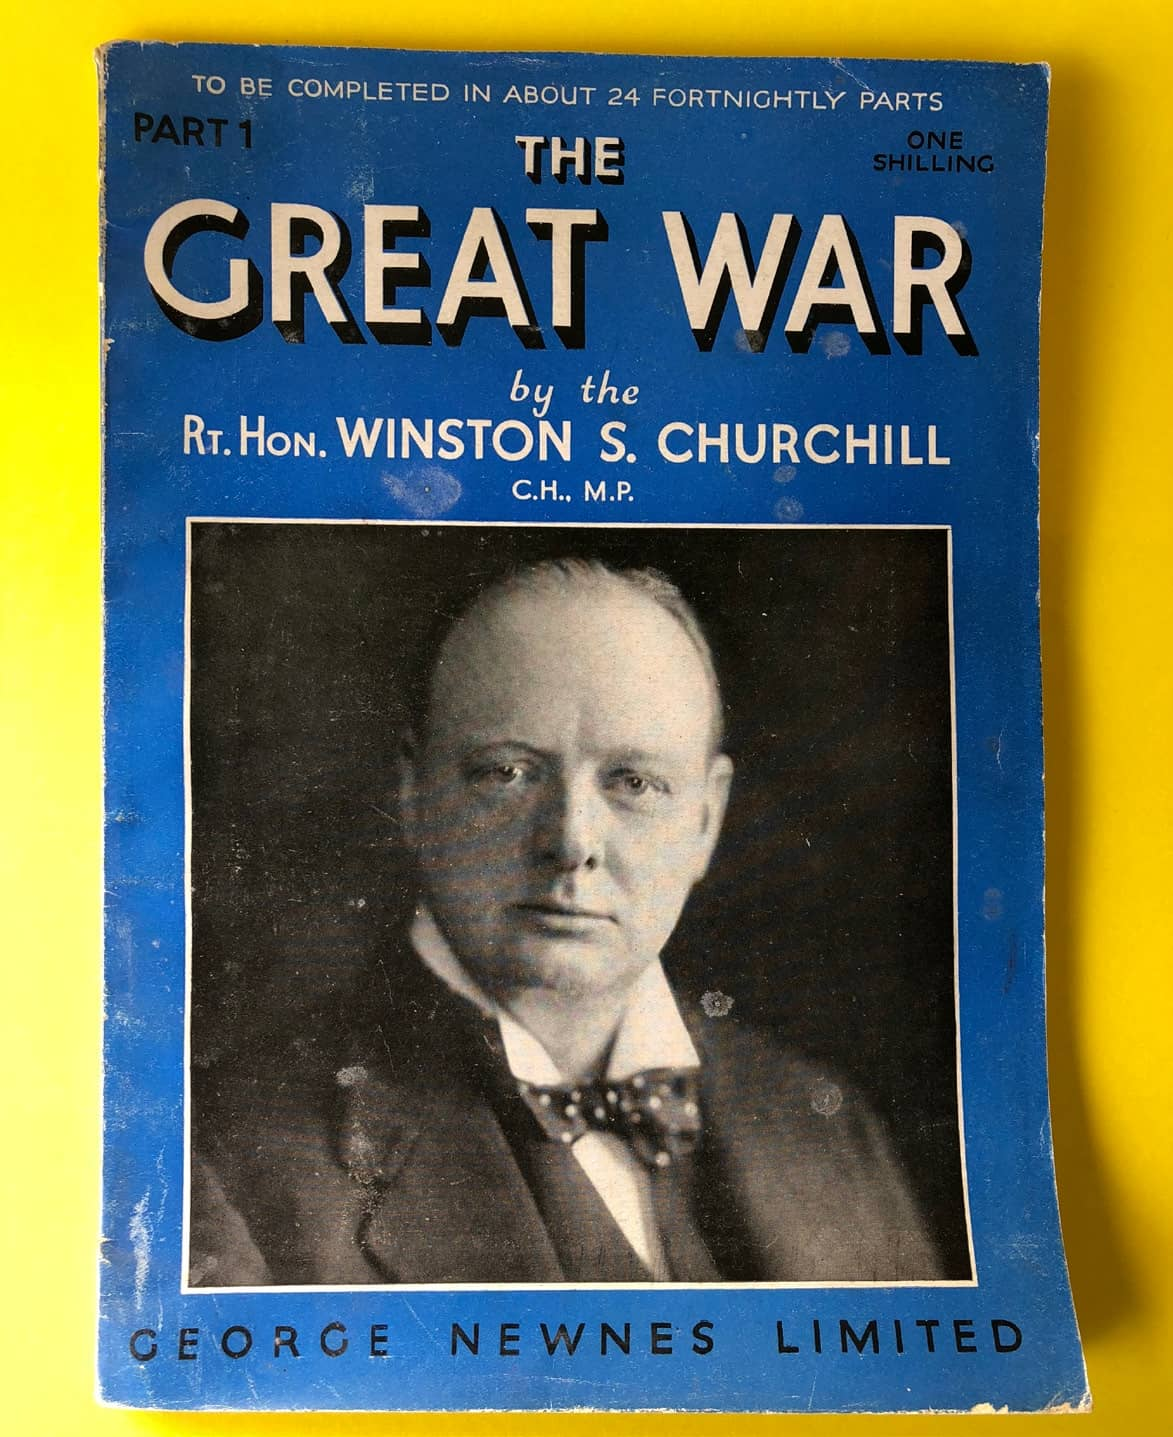 The World Crisis Breeds New Publishing Relationships For Churchill